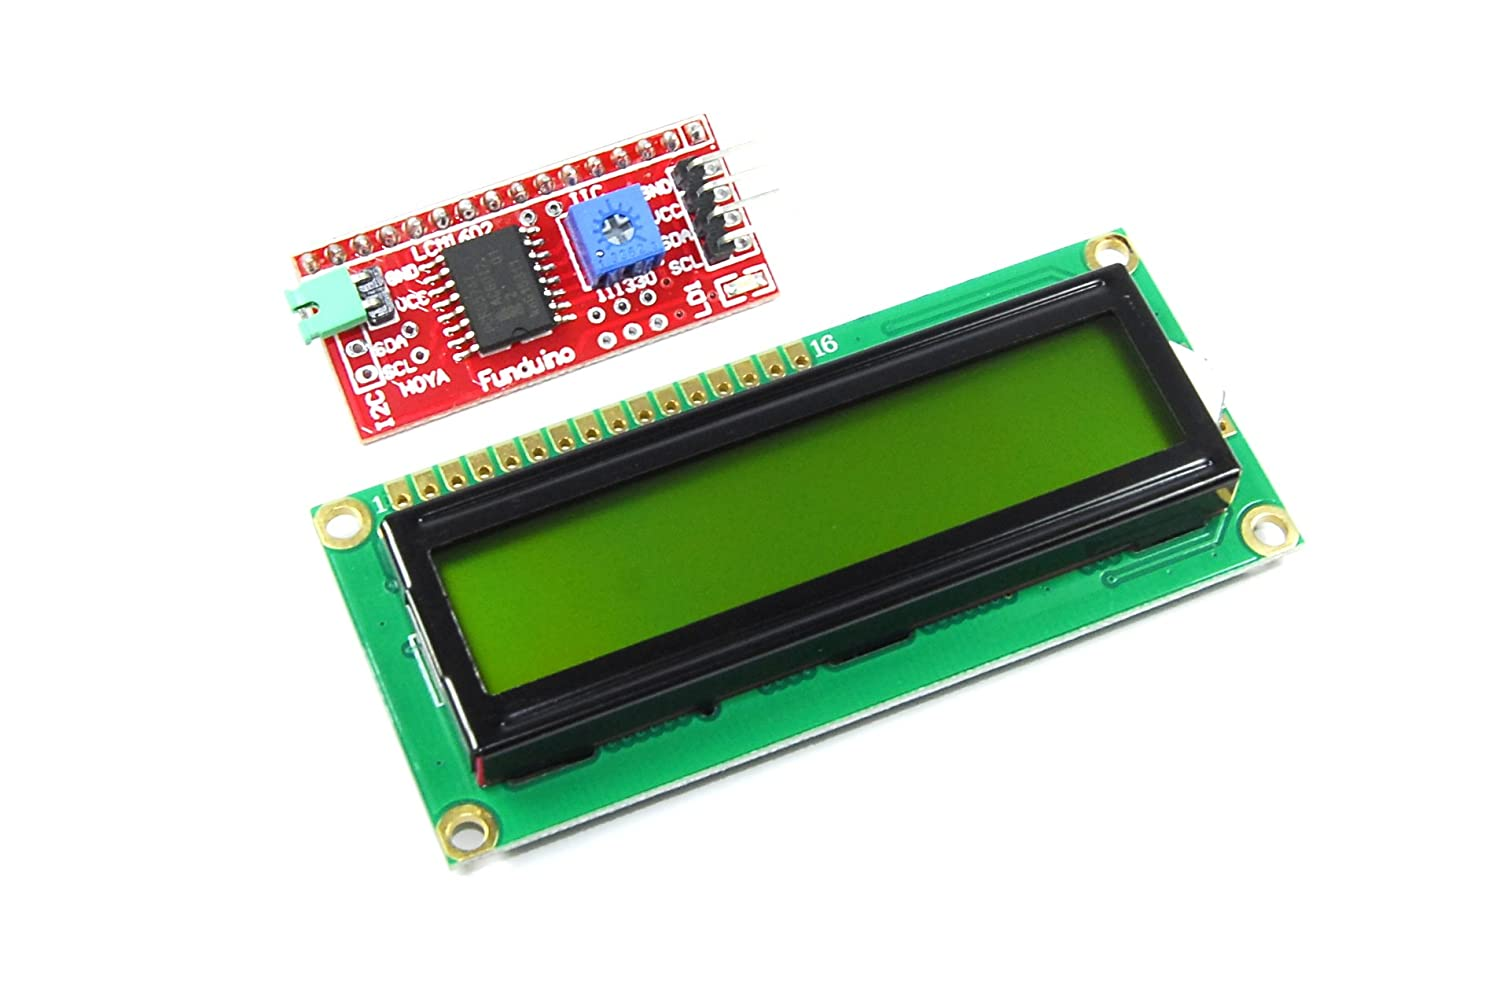 16x2 Green LCD with Funduino I2C Interface MB-063 1602 HD44780 Keyes LBAA100048